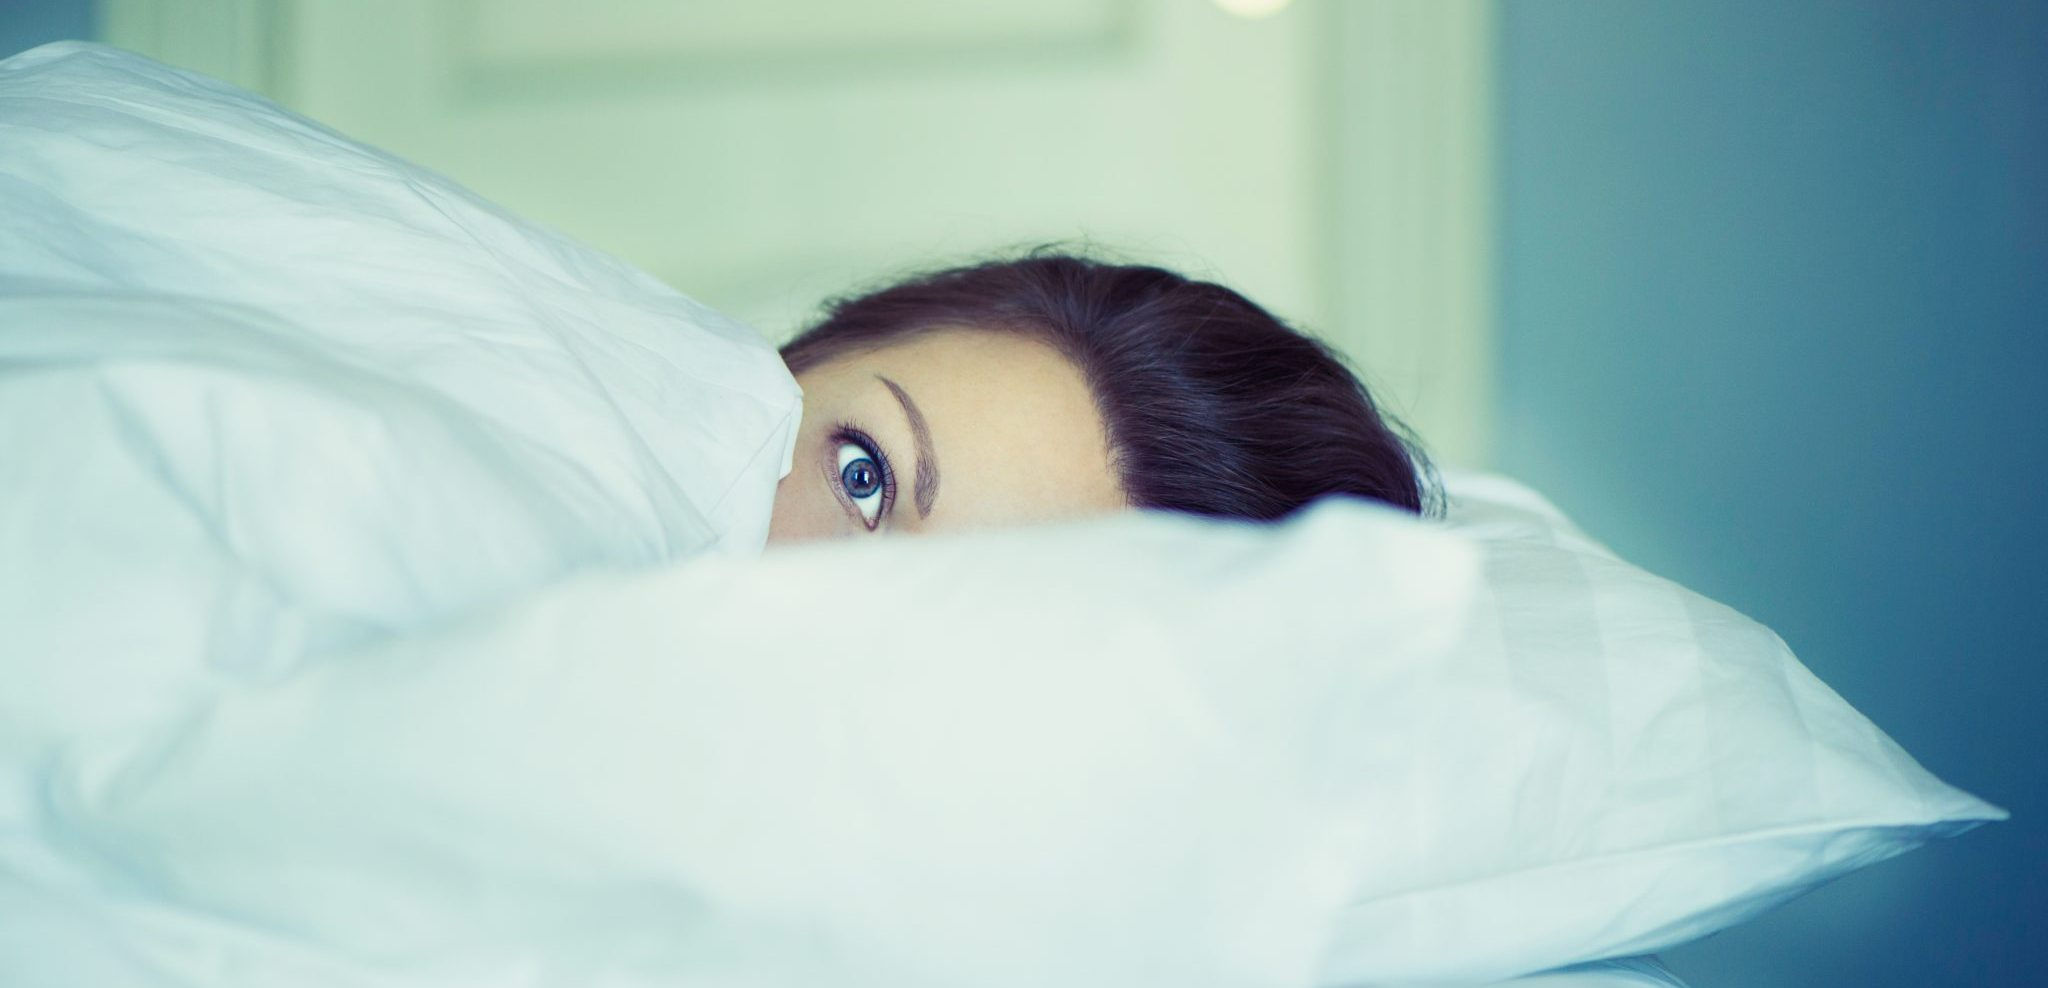 Dreading Night Time? Here's What to Do About a Fear of Sleep